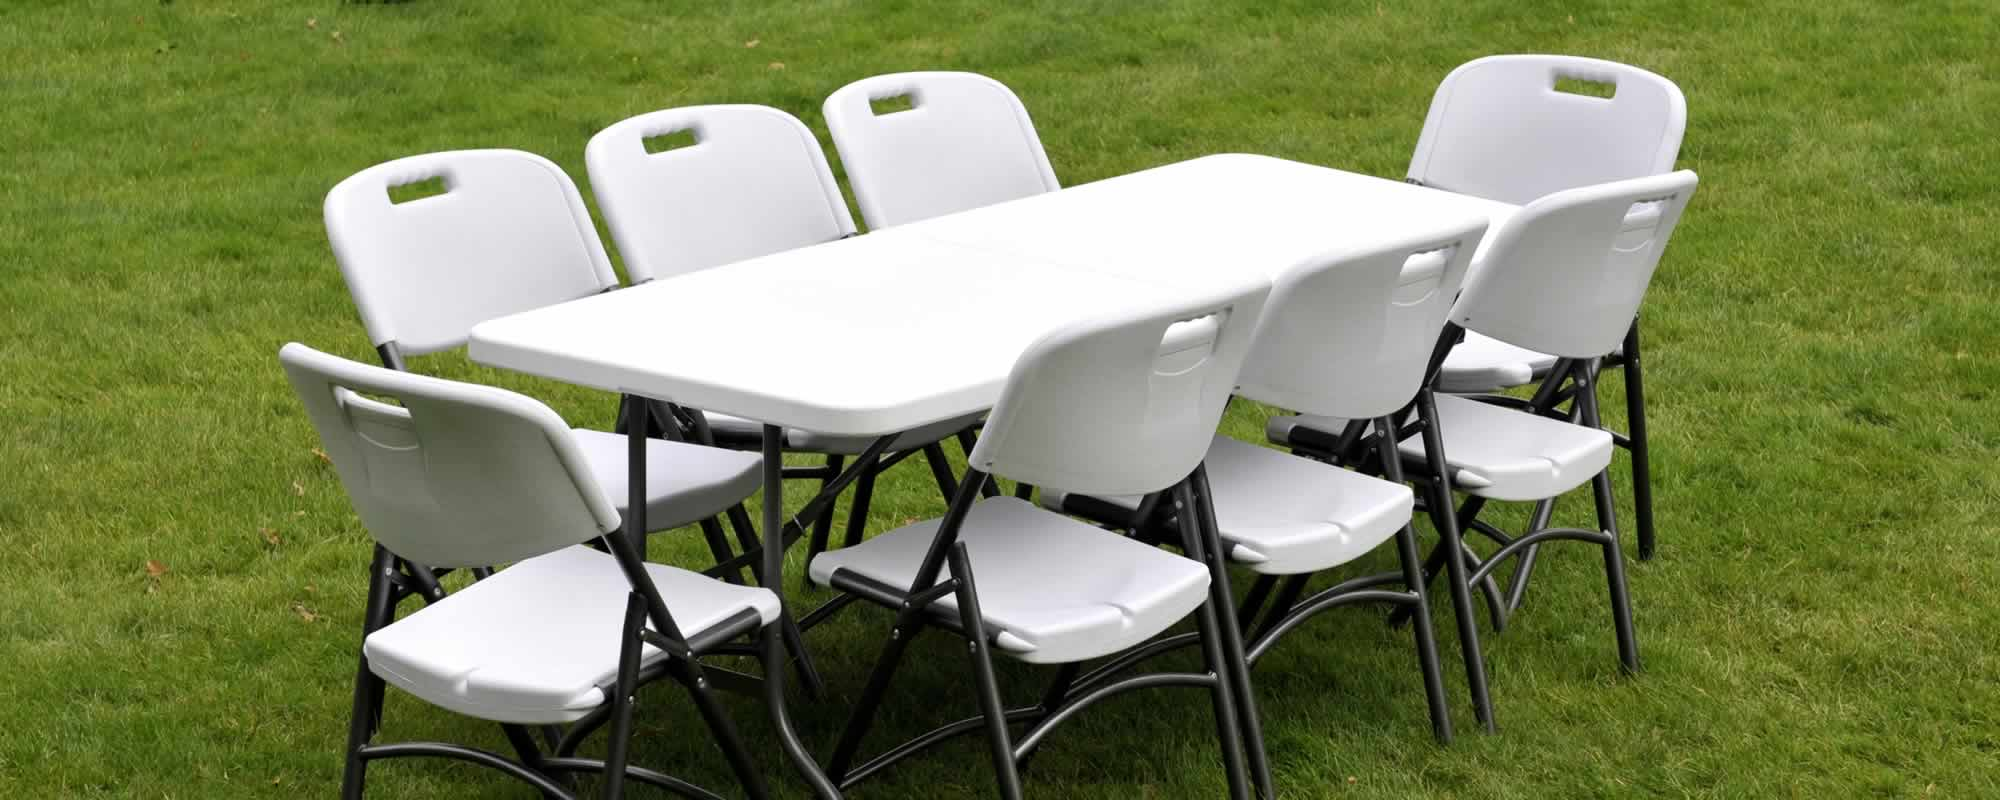 Party Chairs For Rent London Area Party Tables And Chair Hire Adult And Kids Sizes